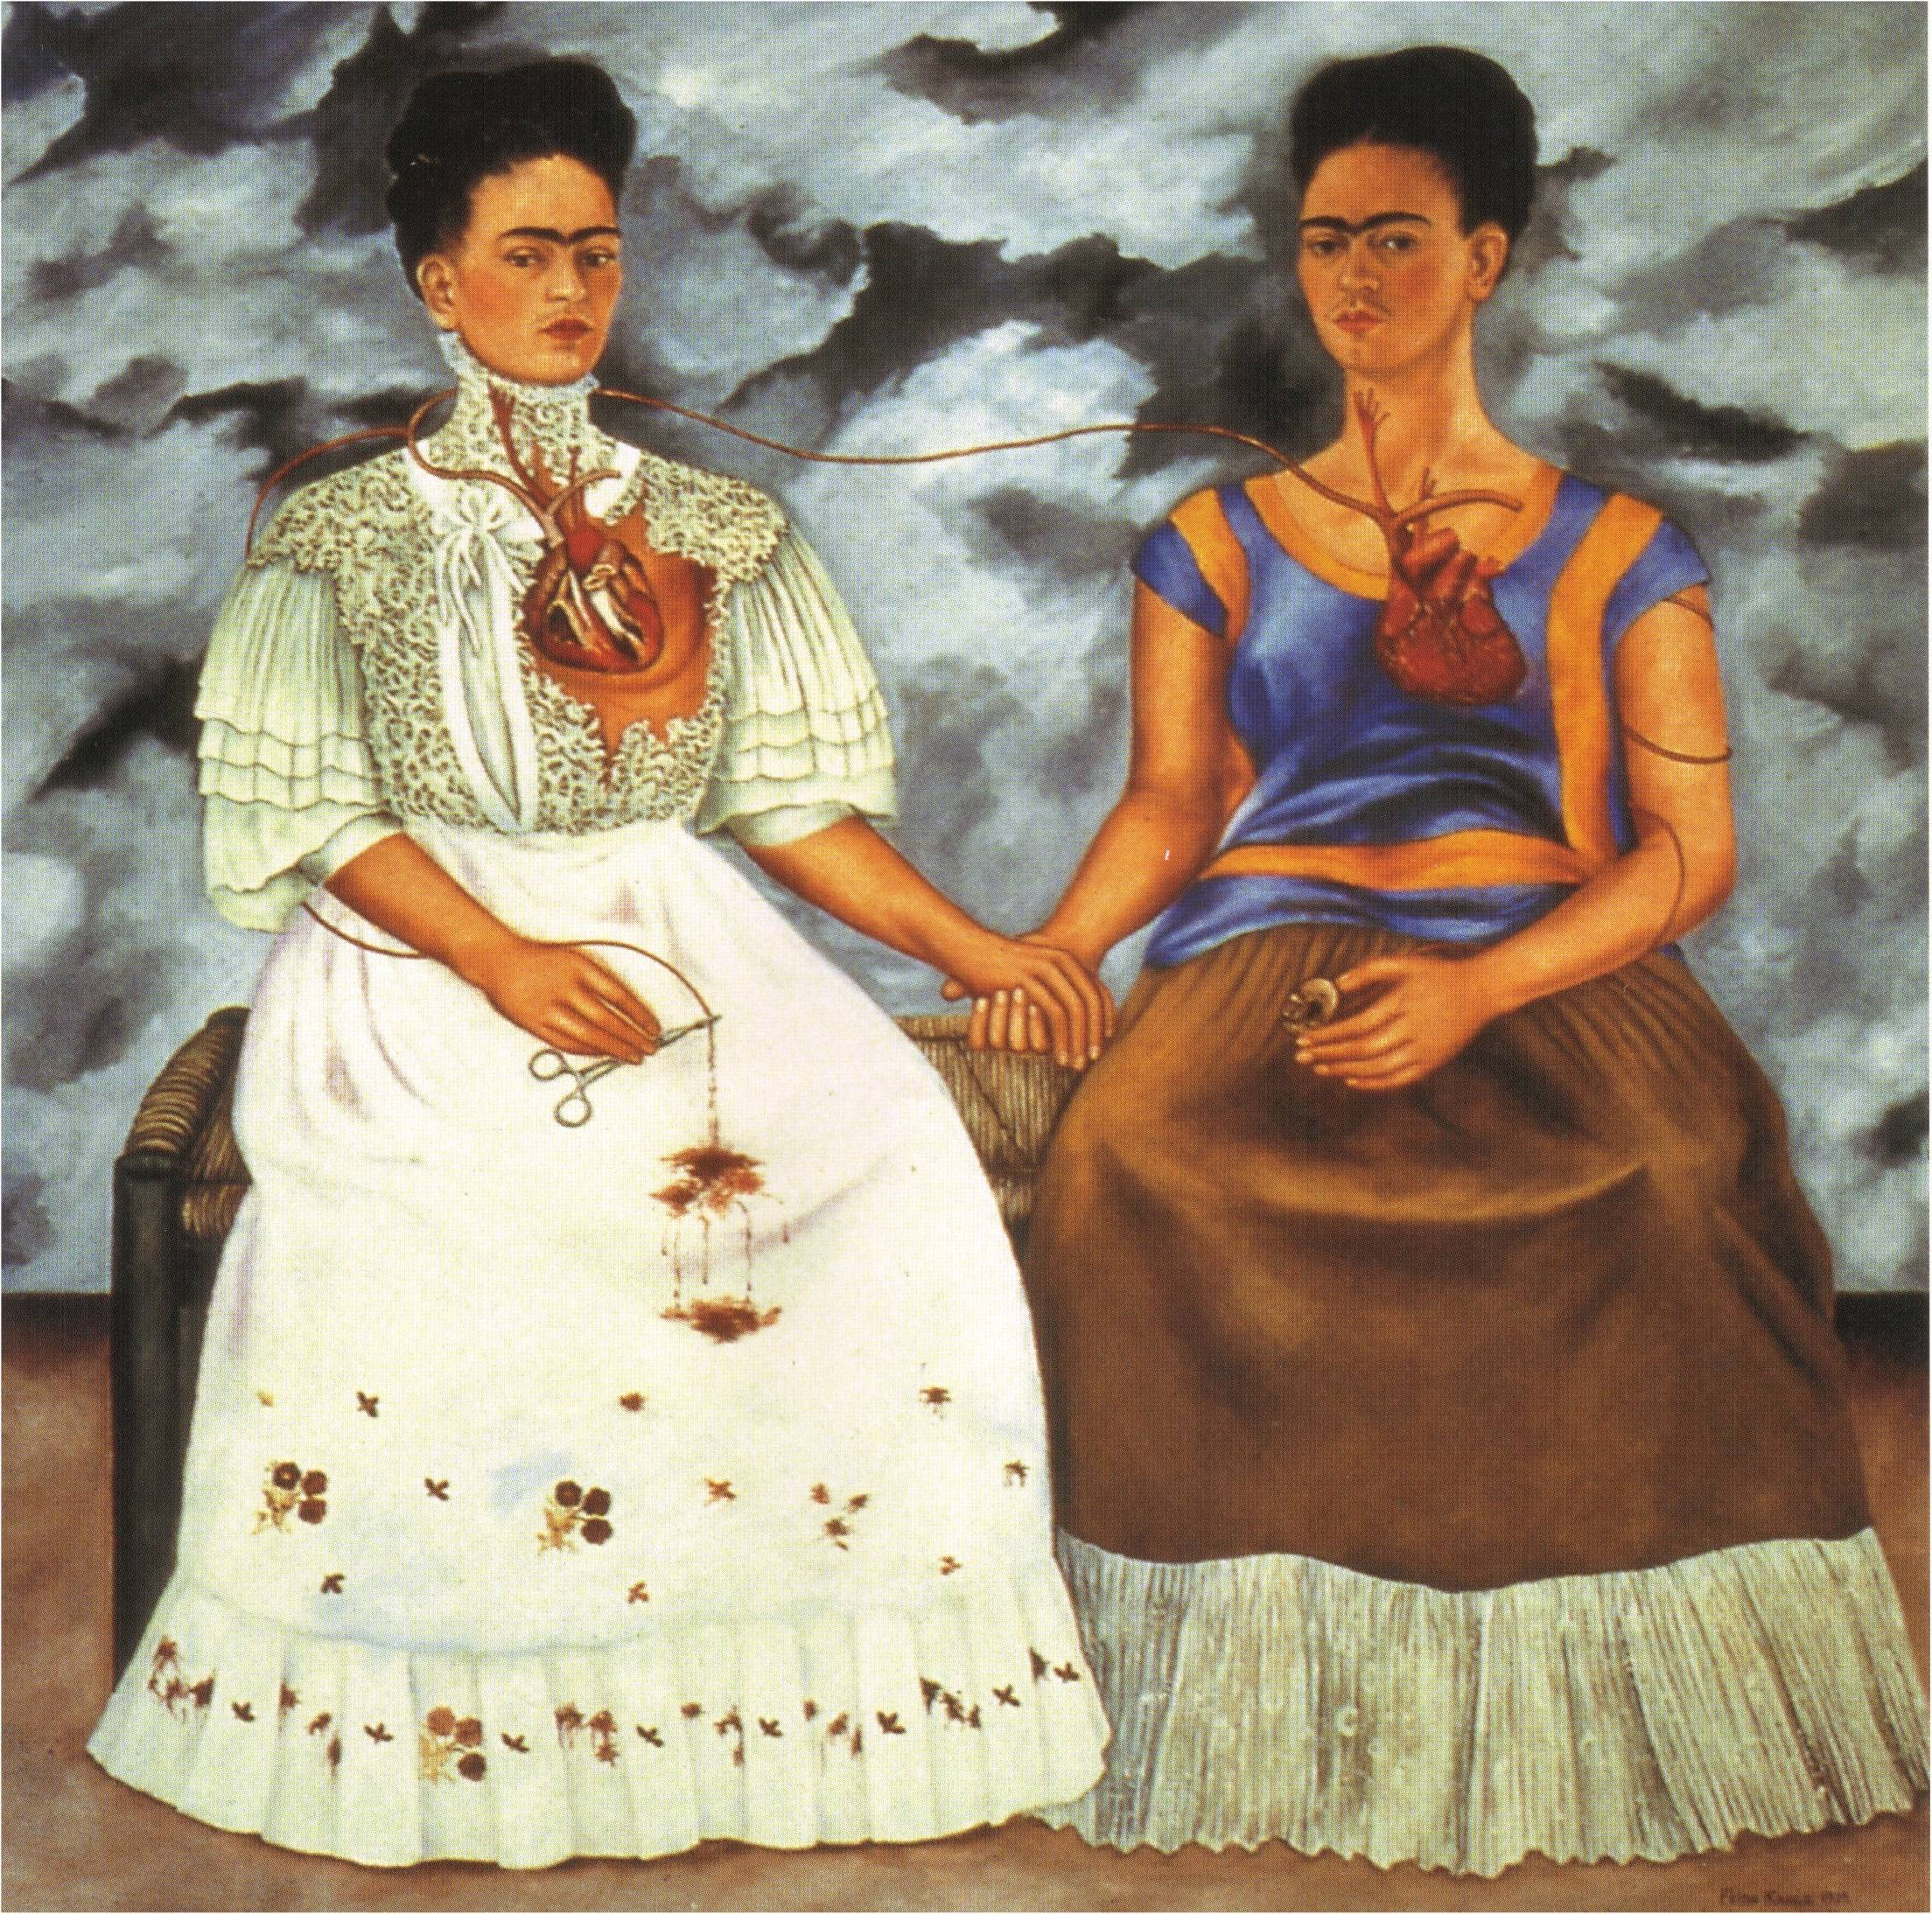 Two Fridas by Frida Kahlo